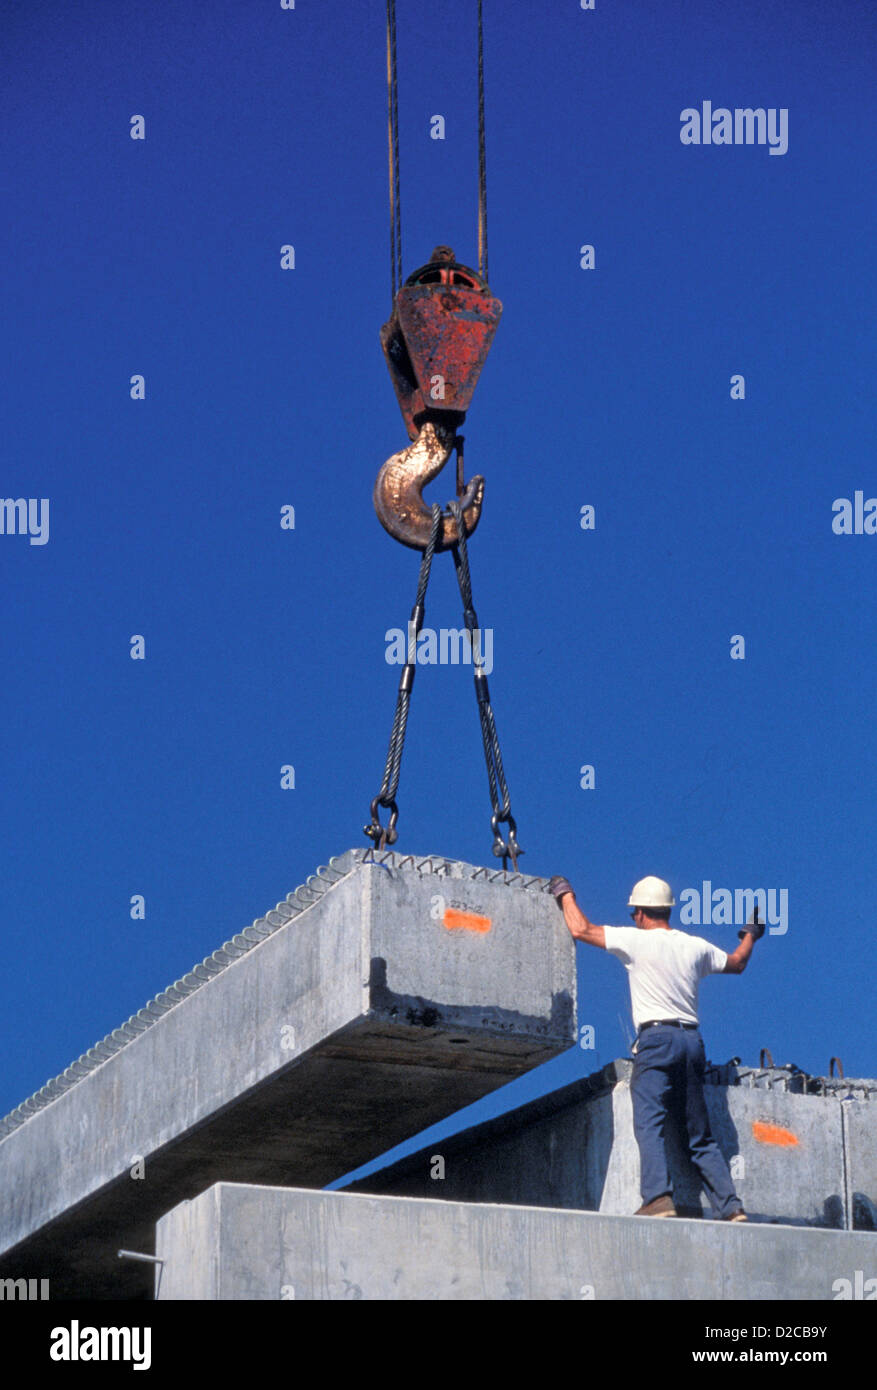 Large Metal Beams Being Moved By Crane At Construction Site - Stock Image